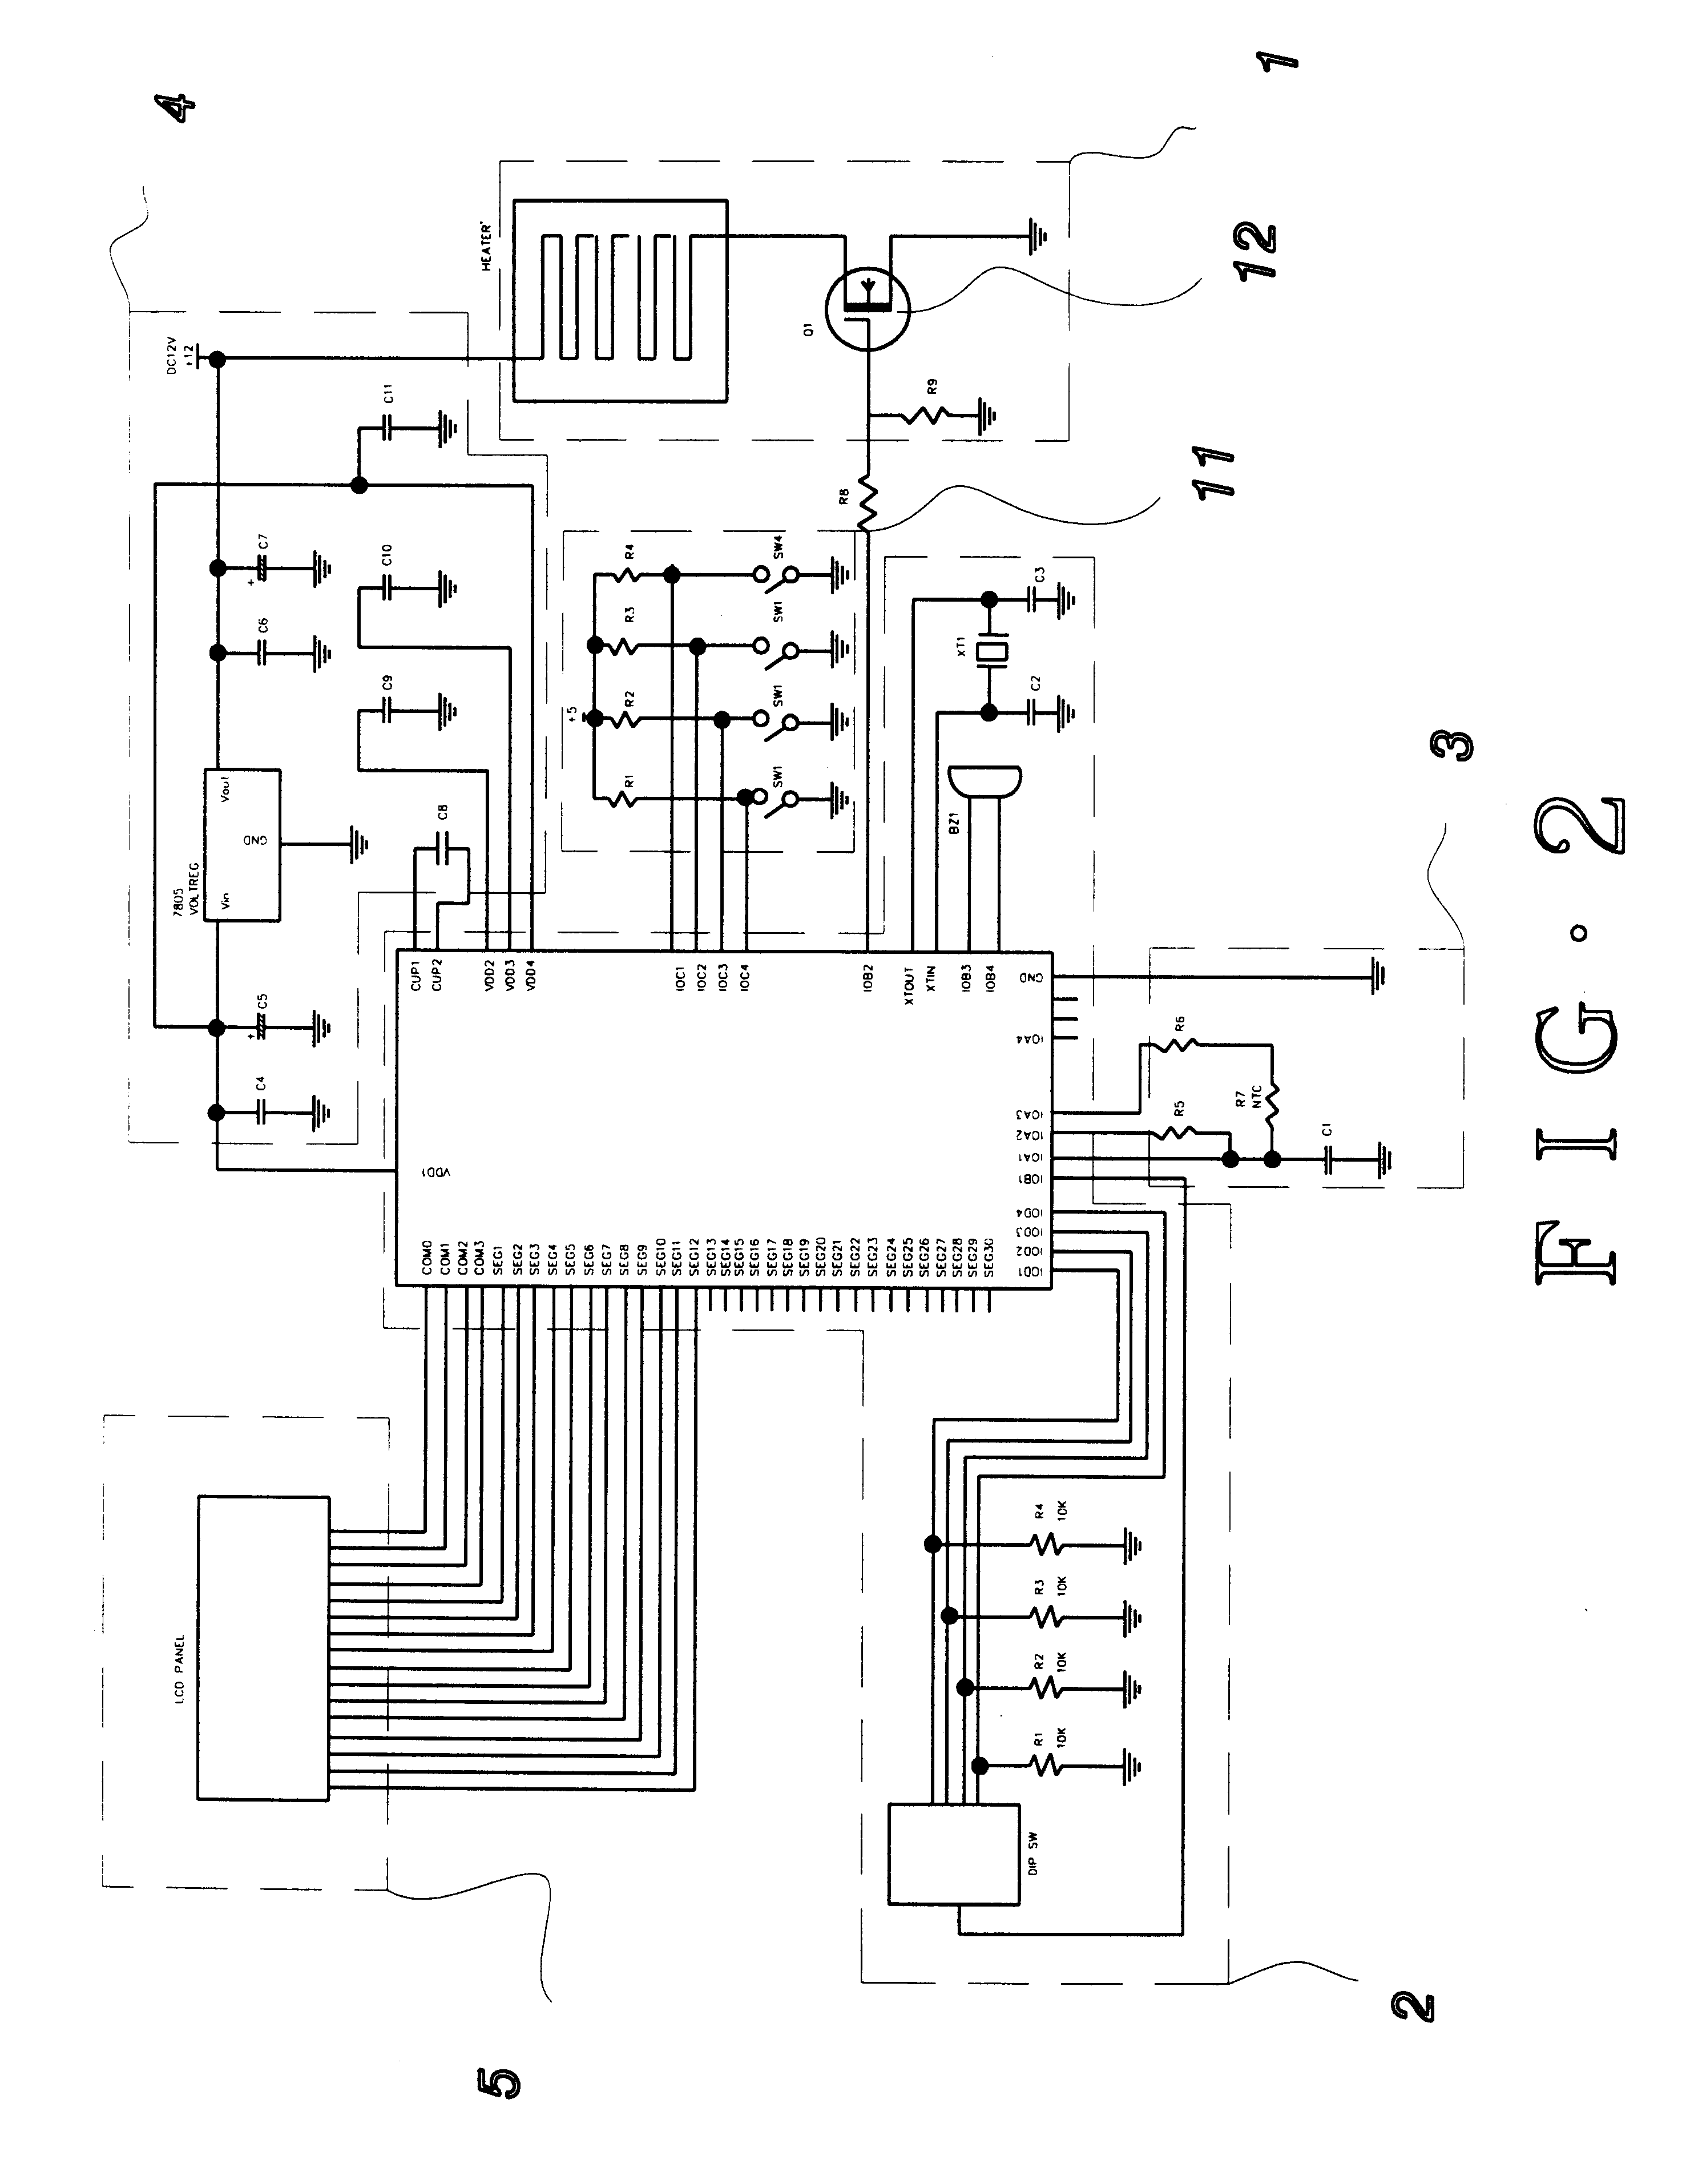 electric blanket wiring diagram amana electric dryer wiring diagram patent us6563090 - electric heating blanket control circuit assembly - google patenten